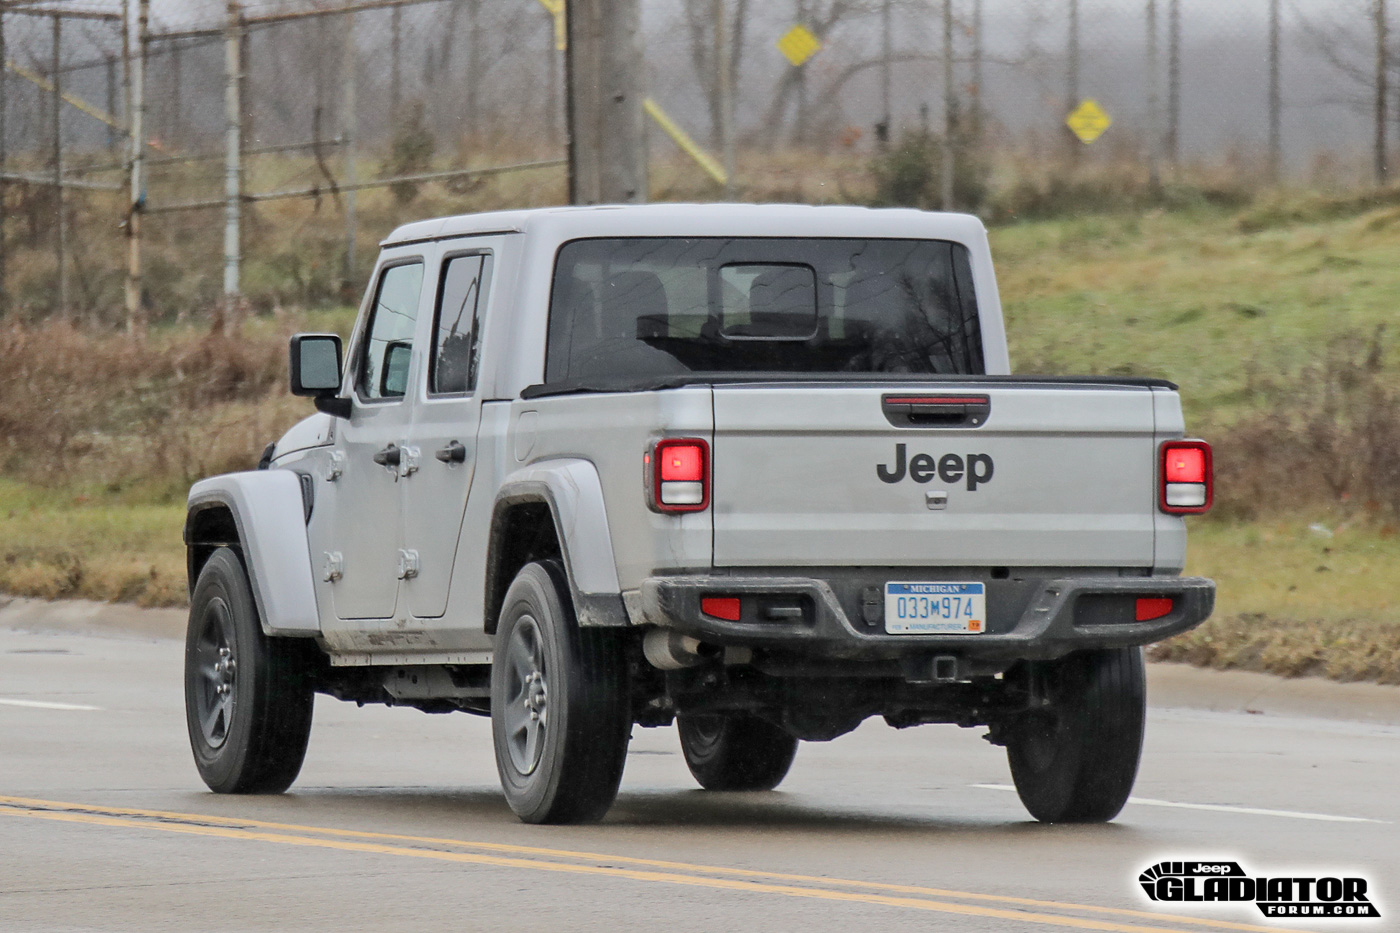 2020-Jeep-Gladiator-JT-Pickup-Truck-Spotted-Undisguised-18.jpg